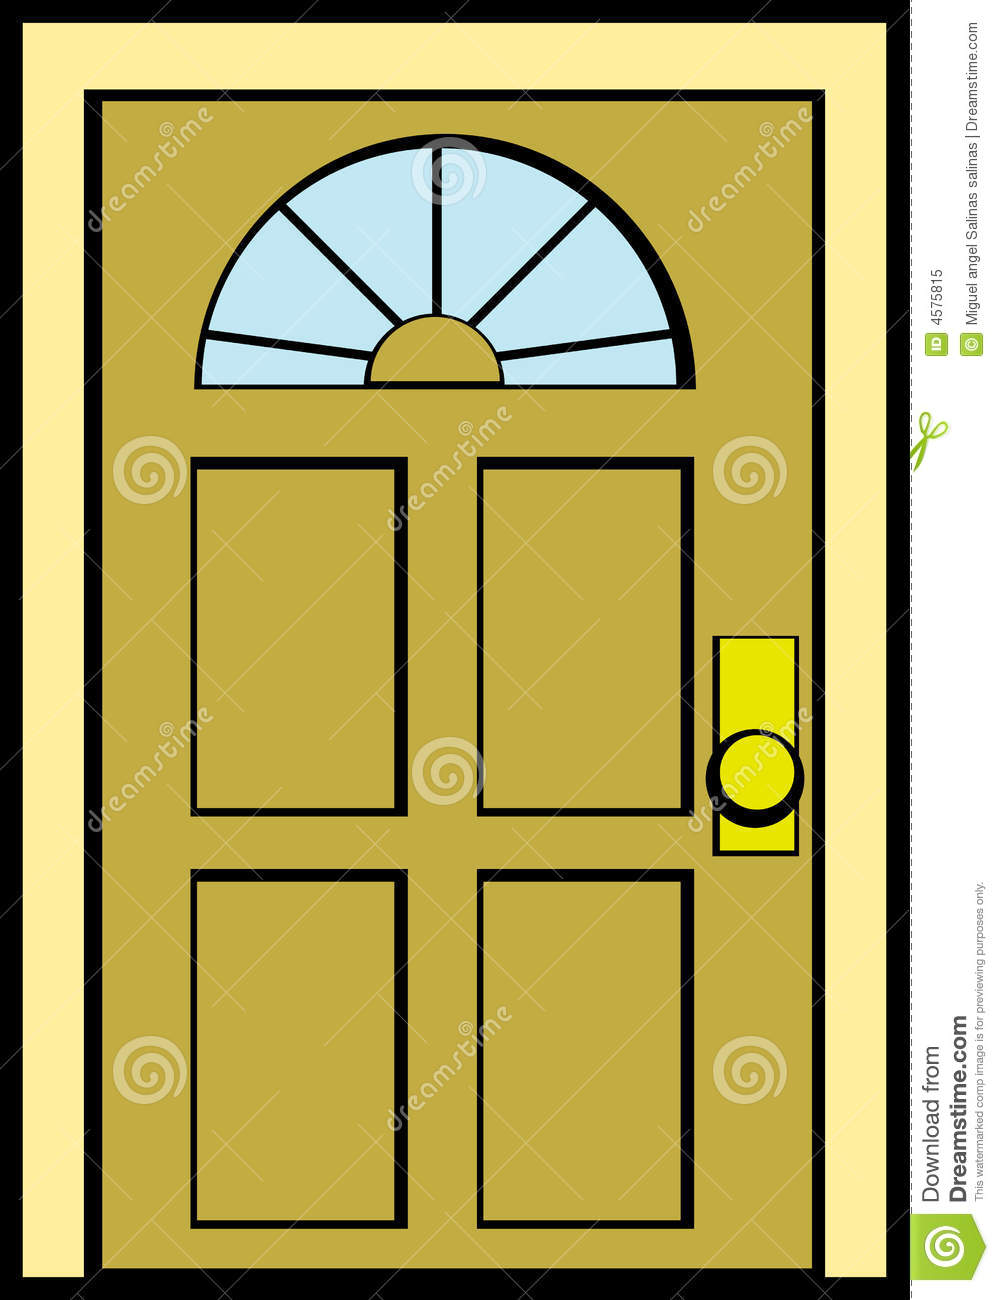 front door clipart clipart panda free clipart images rh clipartpanda com front door clipart images front door clipart black and white